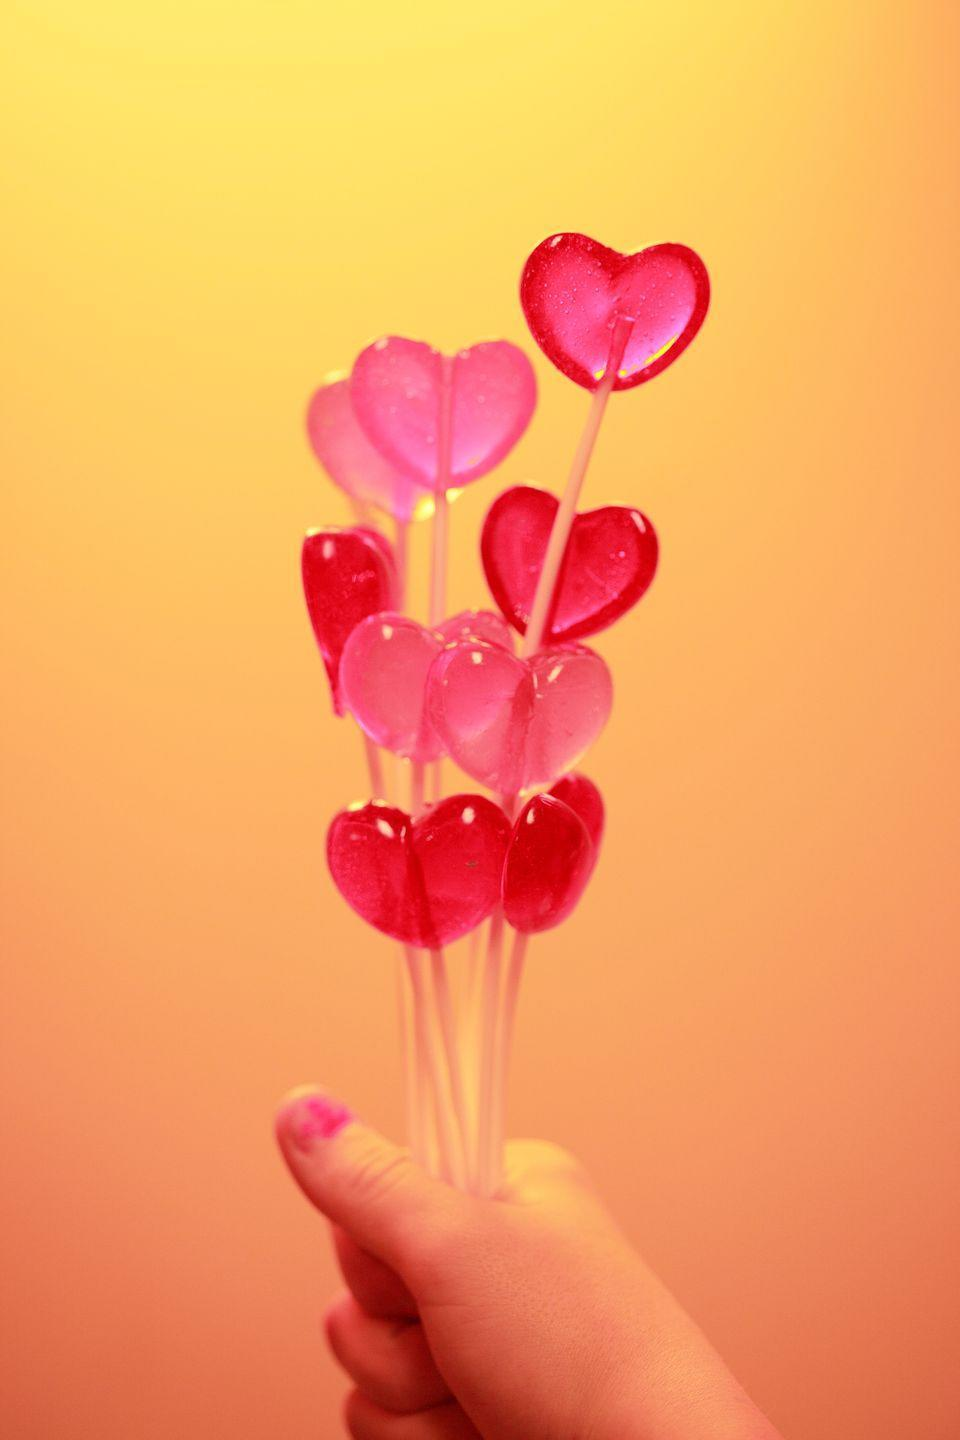 Photo credit: D. Sharon Pruitt Pink Sherbet Photography - Getty Images